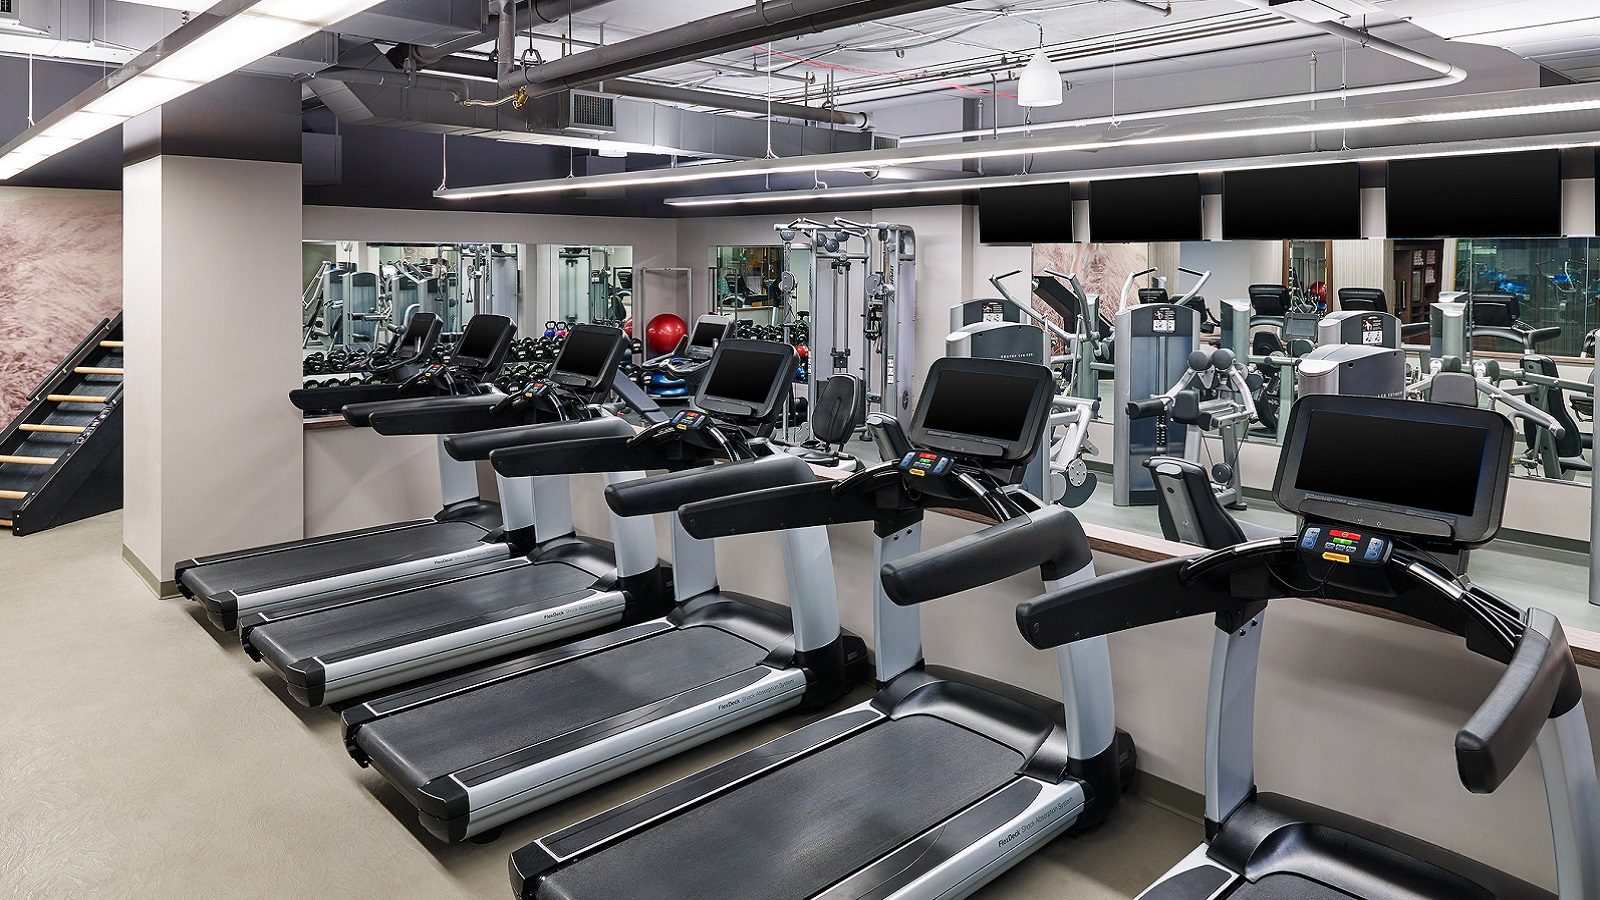 WestinWORKOUT® at The Westin Cleveland Downtown